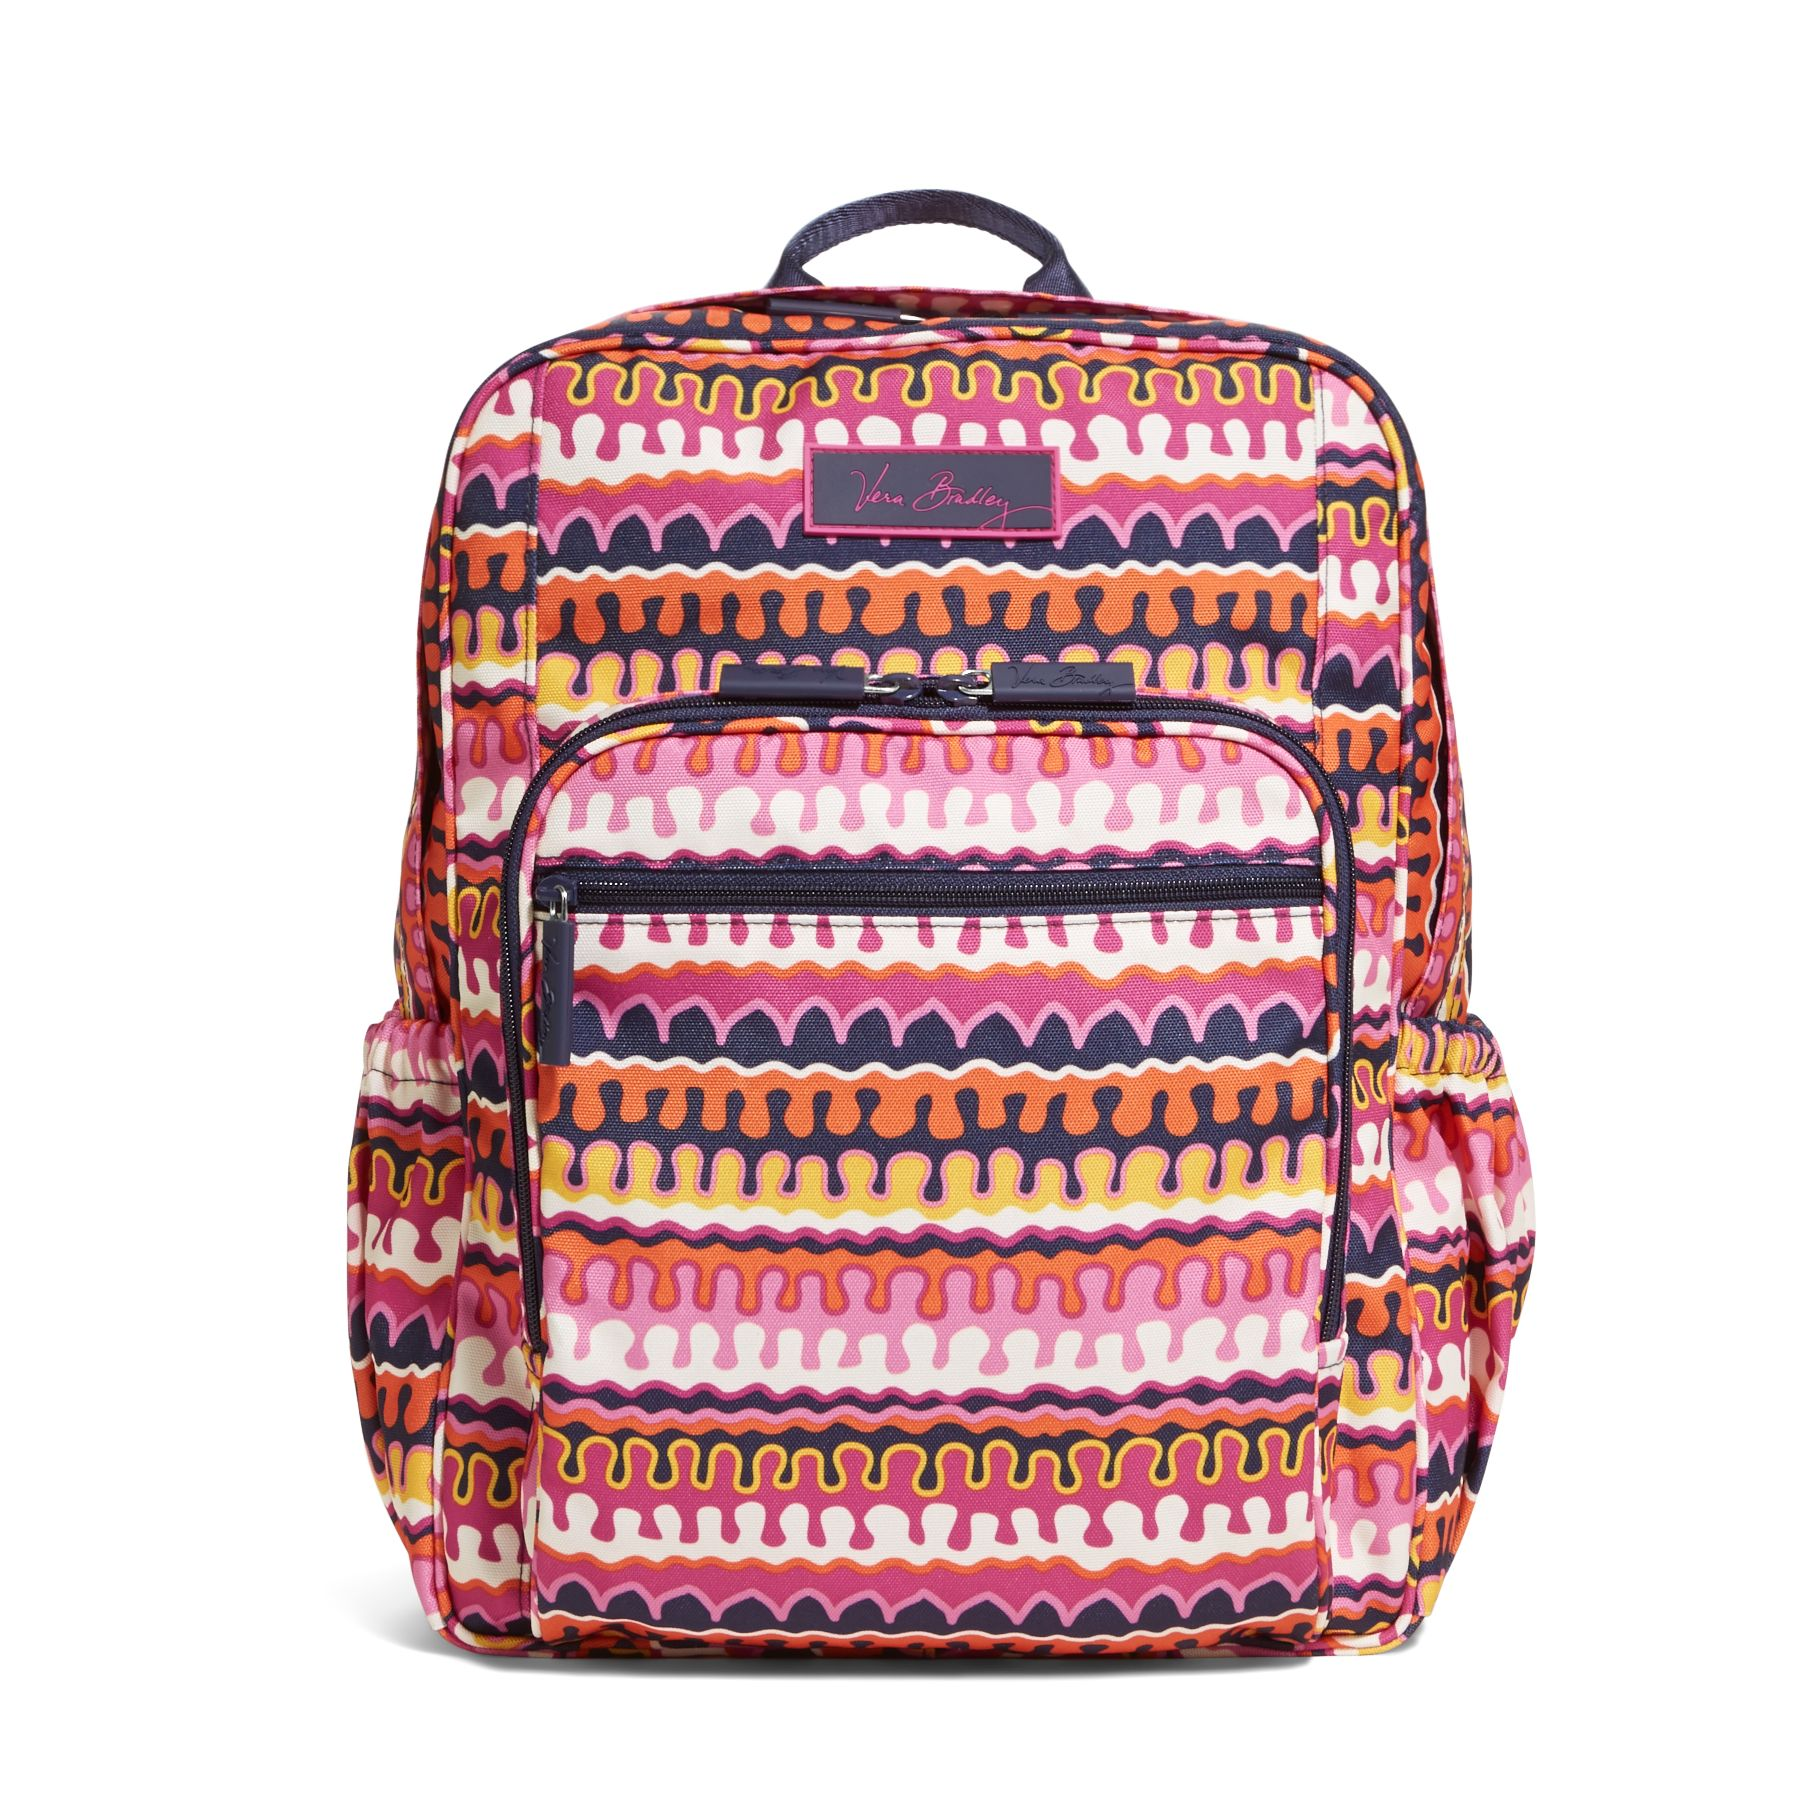 Vera Bradley Lighten Up Medium Backpack in Rio Squiggle